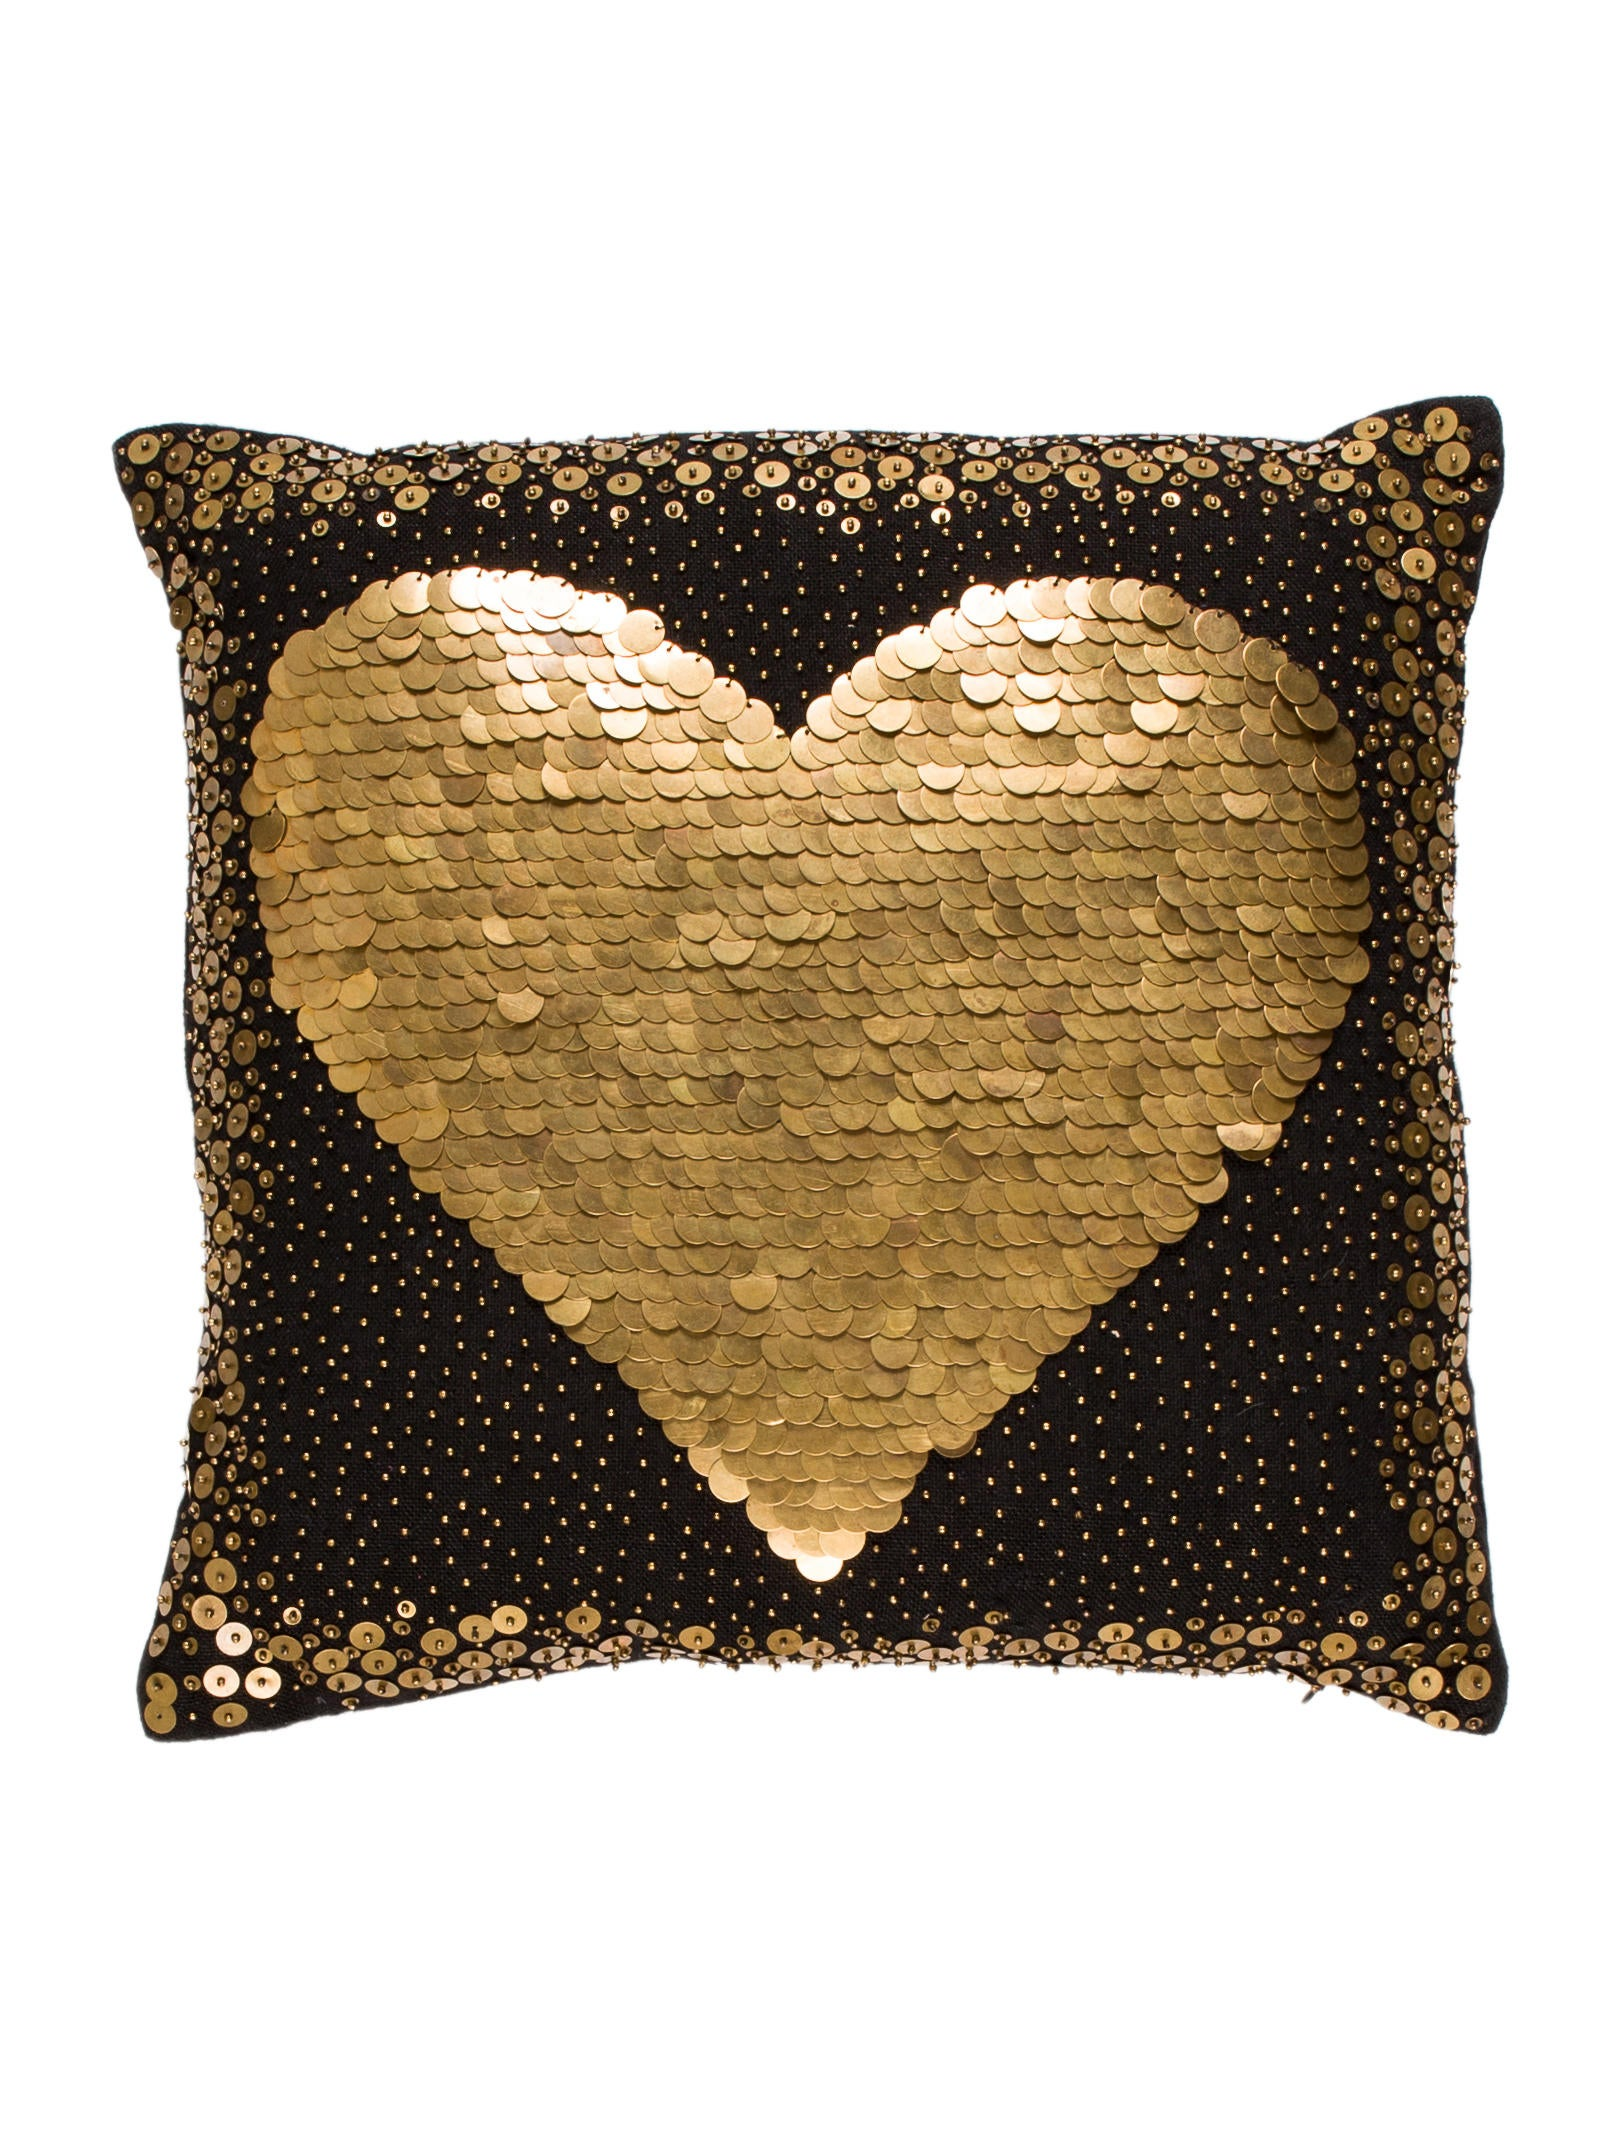 Throw Pillows Justice : Jonathan Adler Black Heart Throw Pillow - Pillows And Throws - JTADL20698 The RealReal